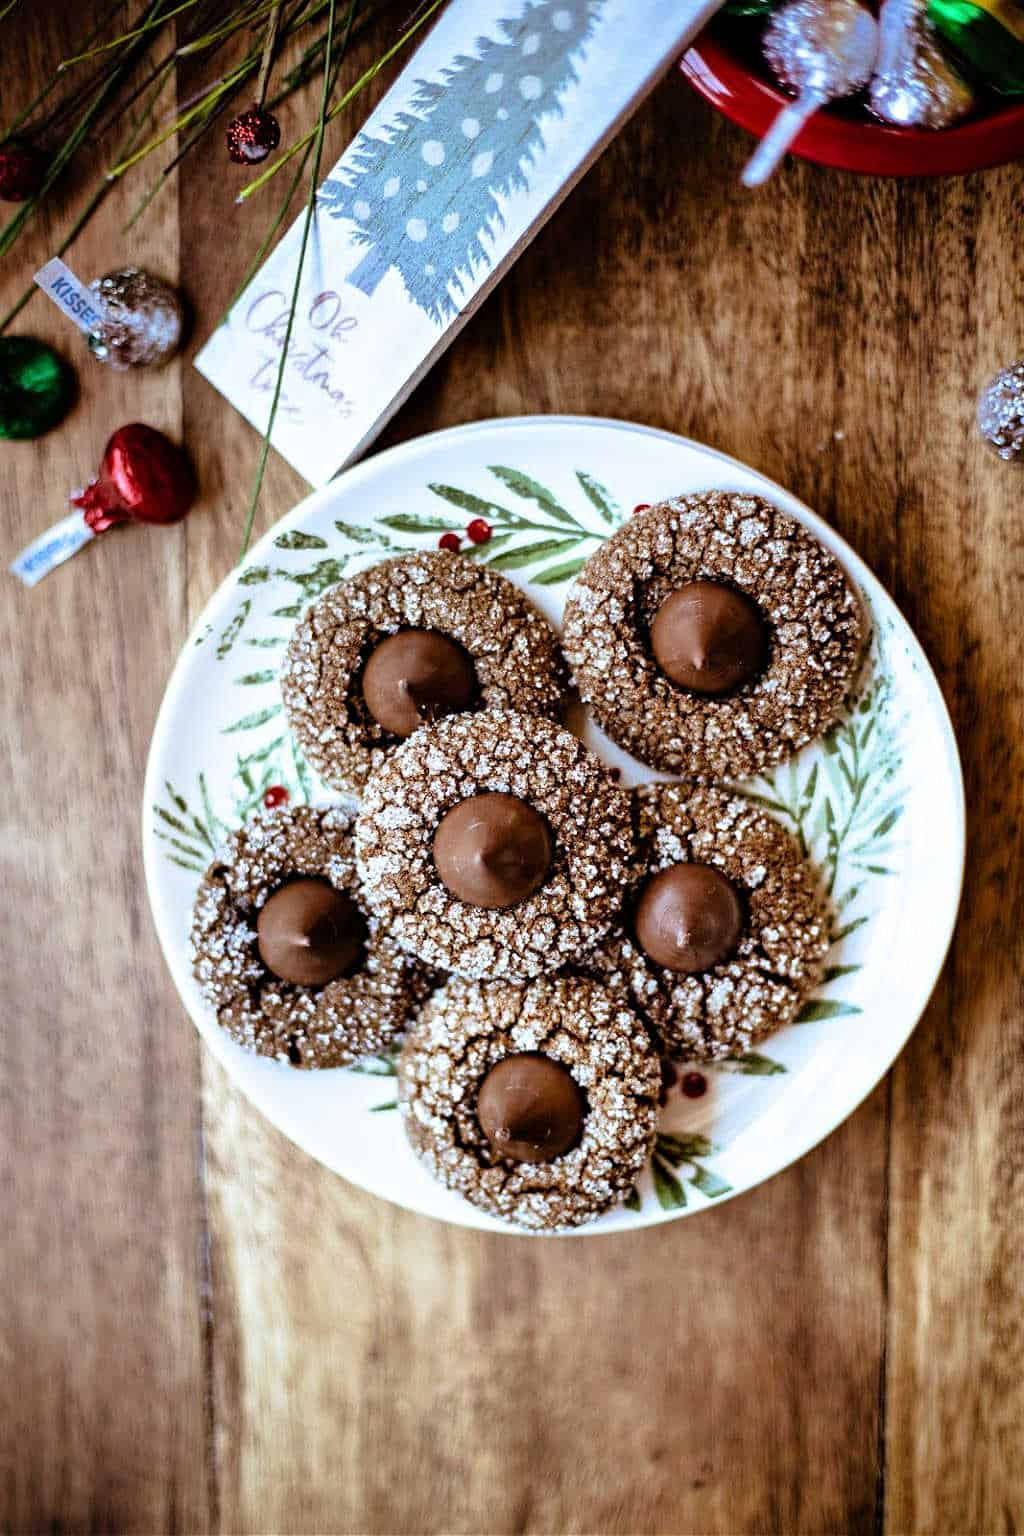 A plate of Gingerbread Kiss Cookies on a wooden table